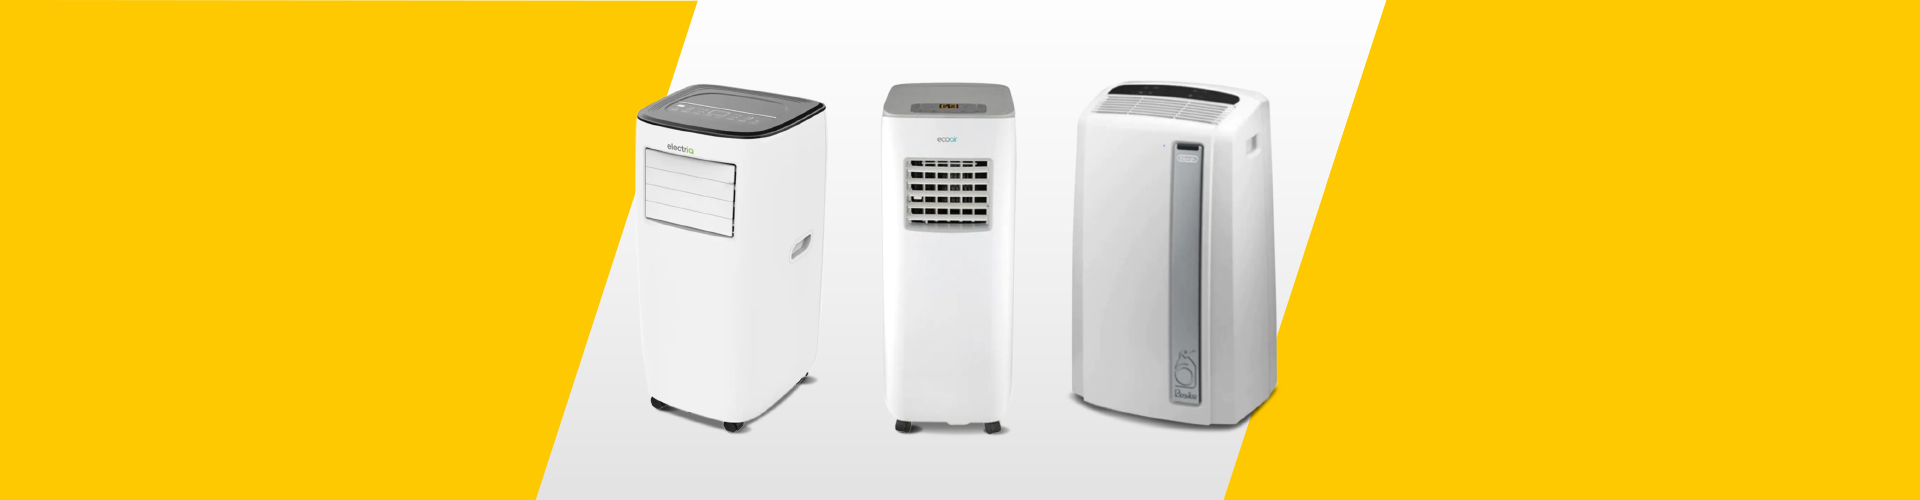 /products/plant-hire/heating-ventilation-cooling/